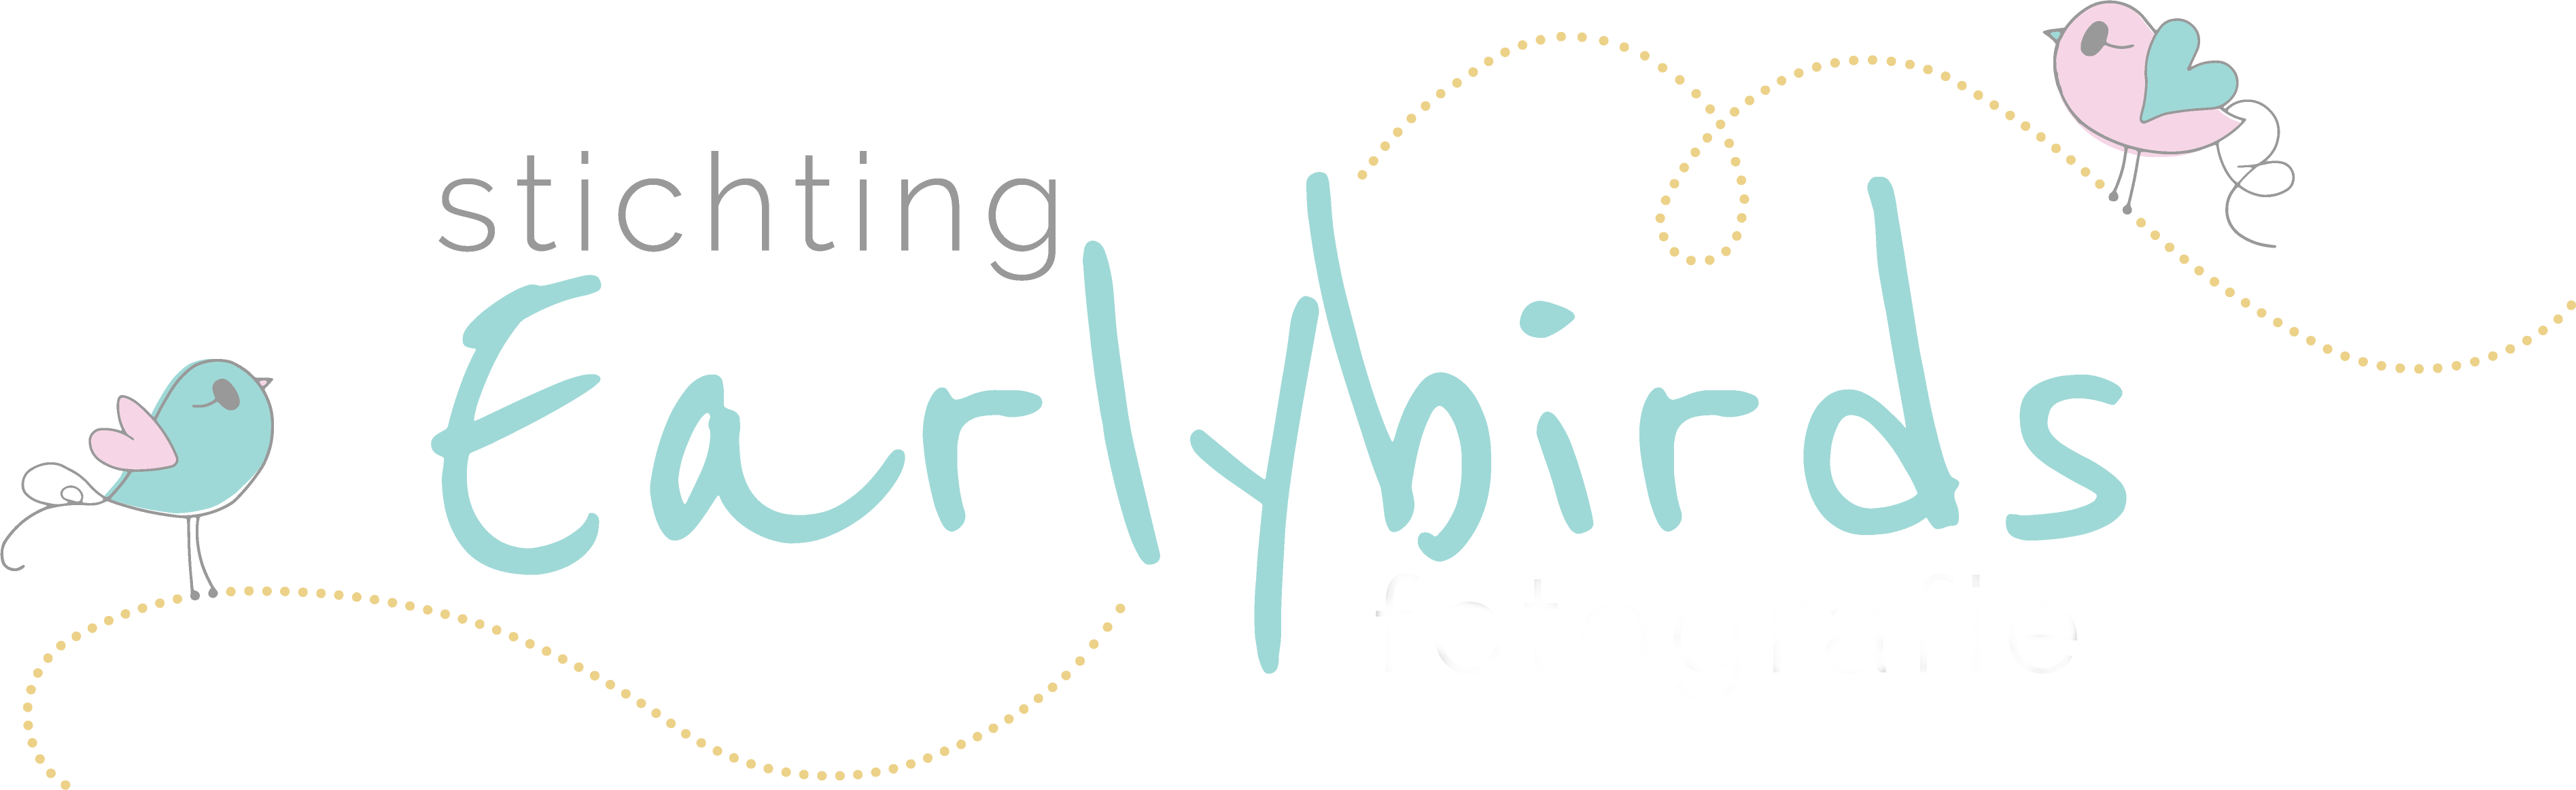 logo-Stichting Earlybirds Fotografie